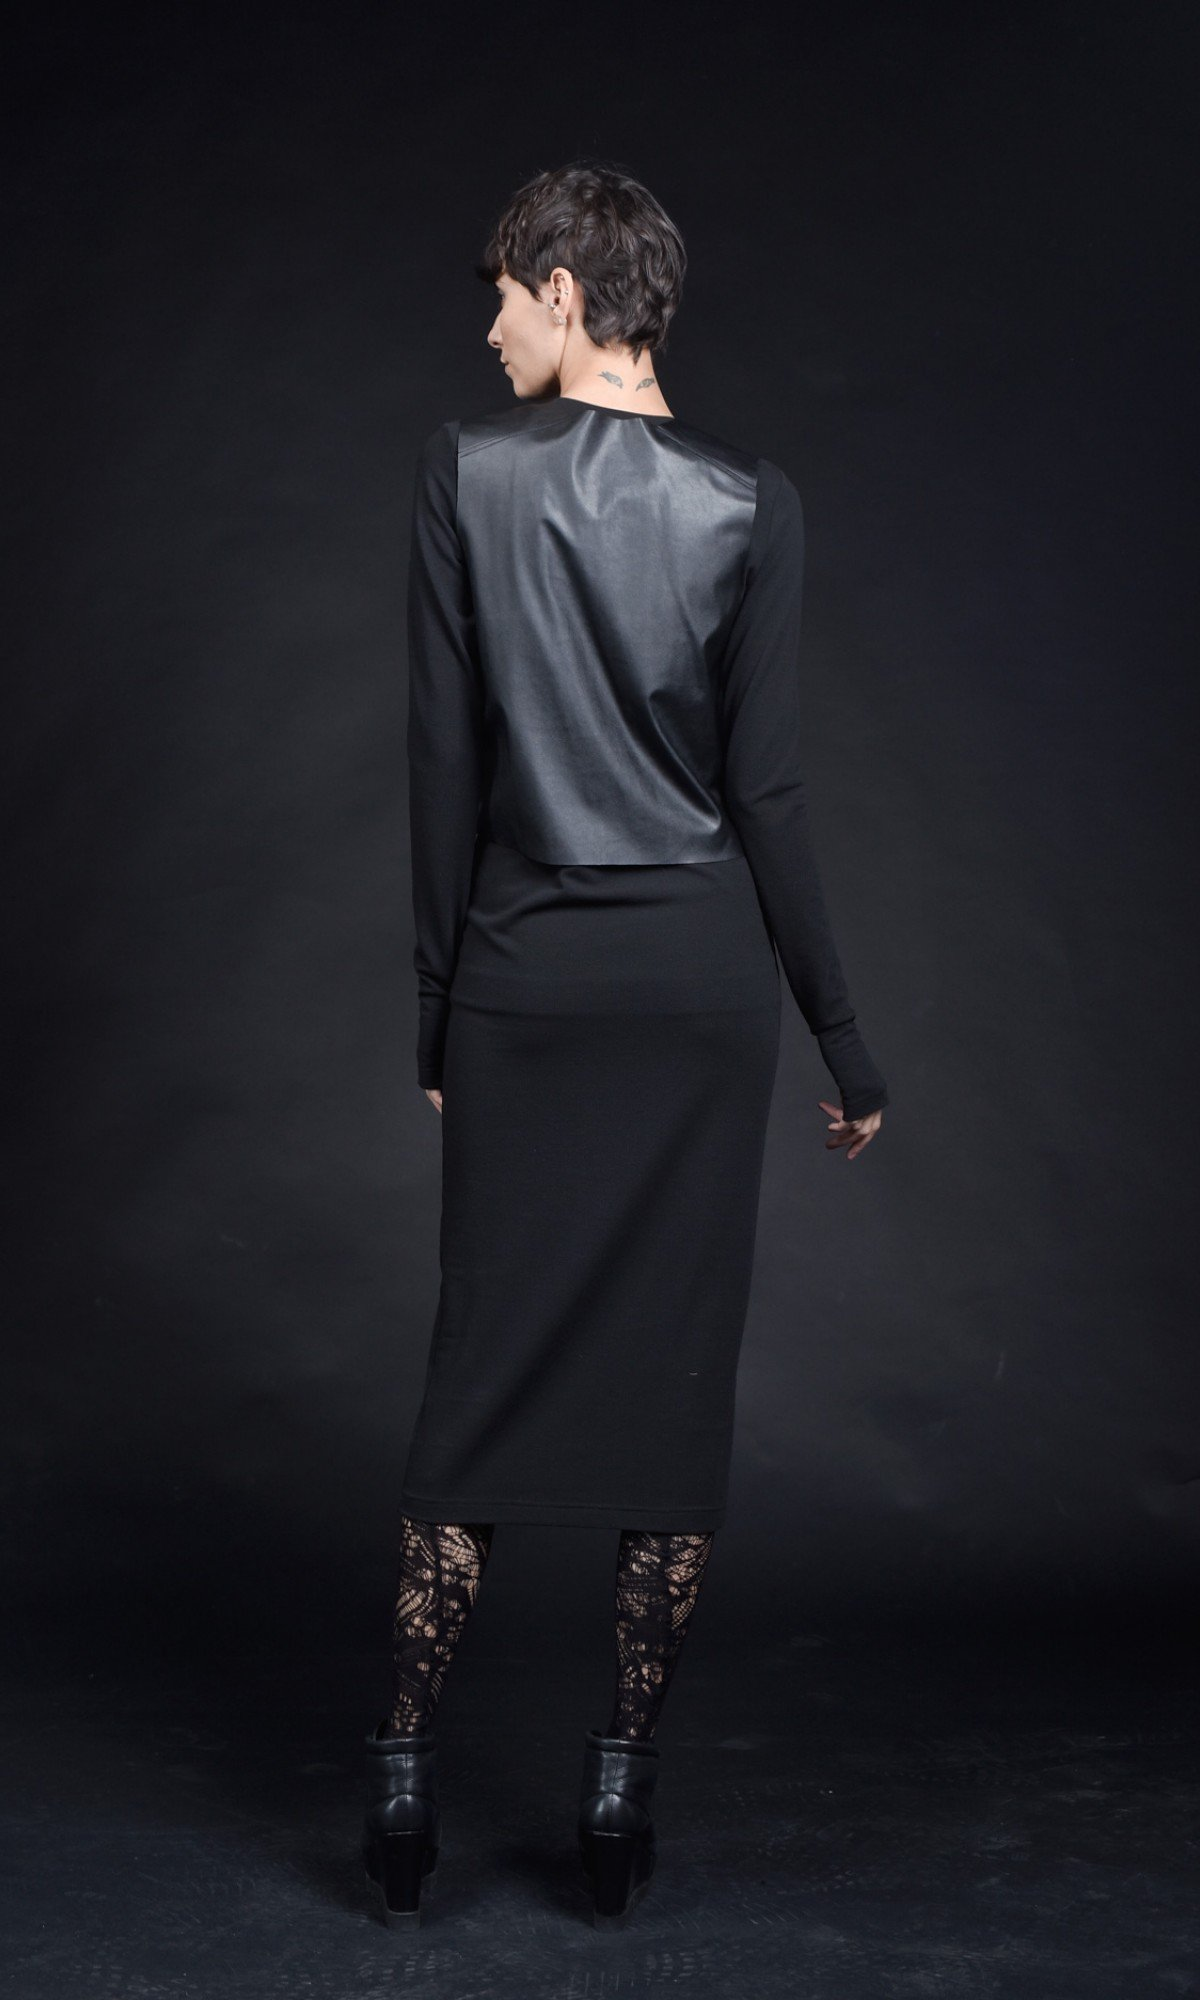 Elegant bodycon cotton dress with leather elements A90399